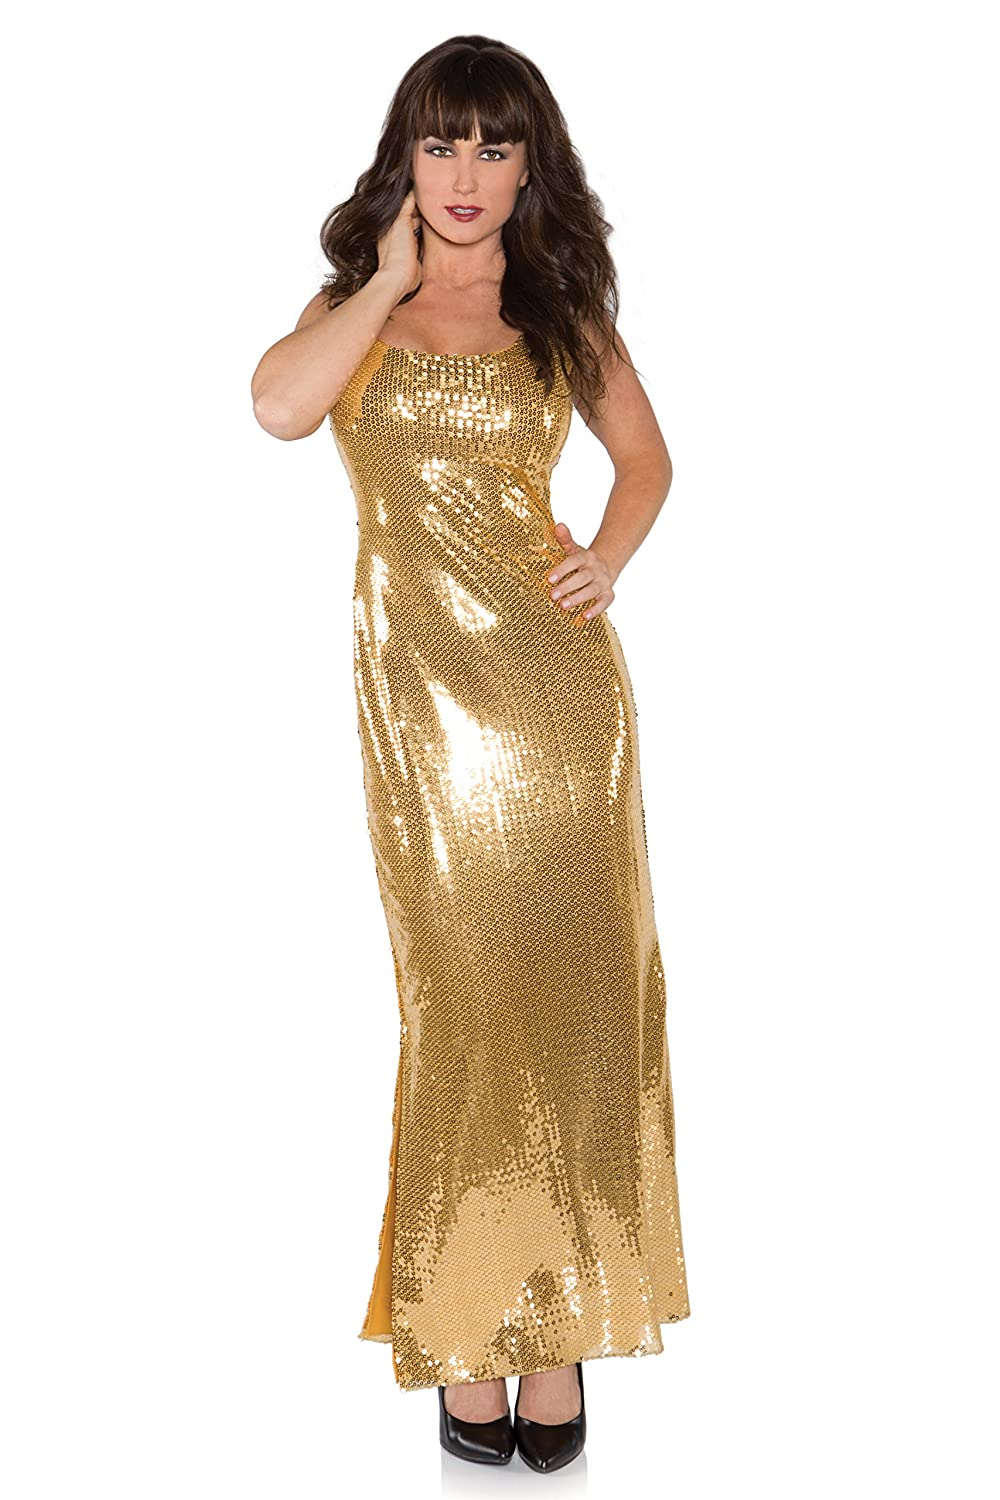 70s Costumes: Disco Costumes, Hippie Outfits Womens Sexy Sequin Costume Long Dress $87.00 AT vintagedancer.com